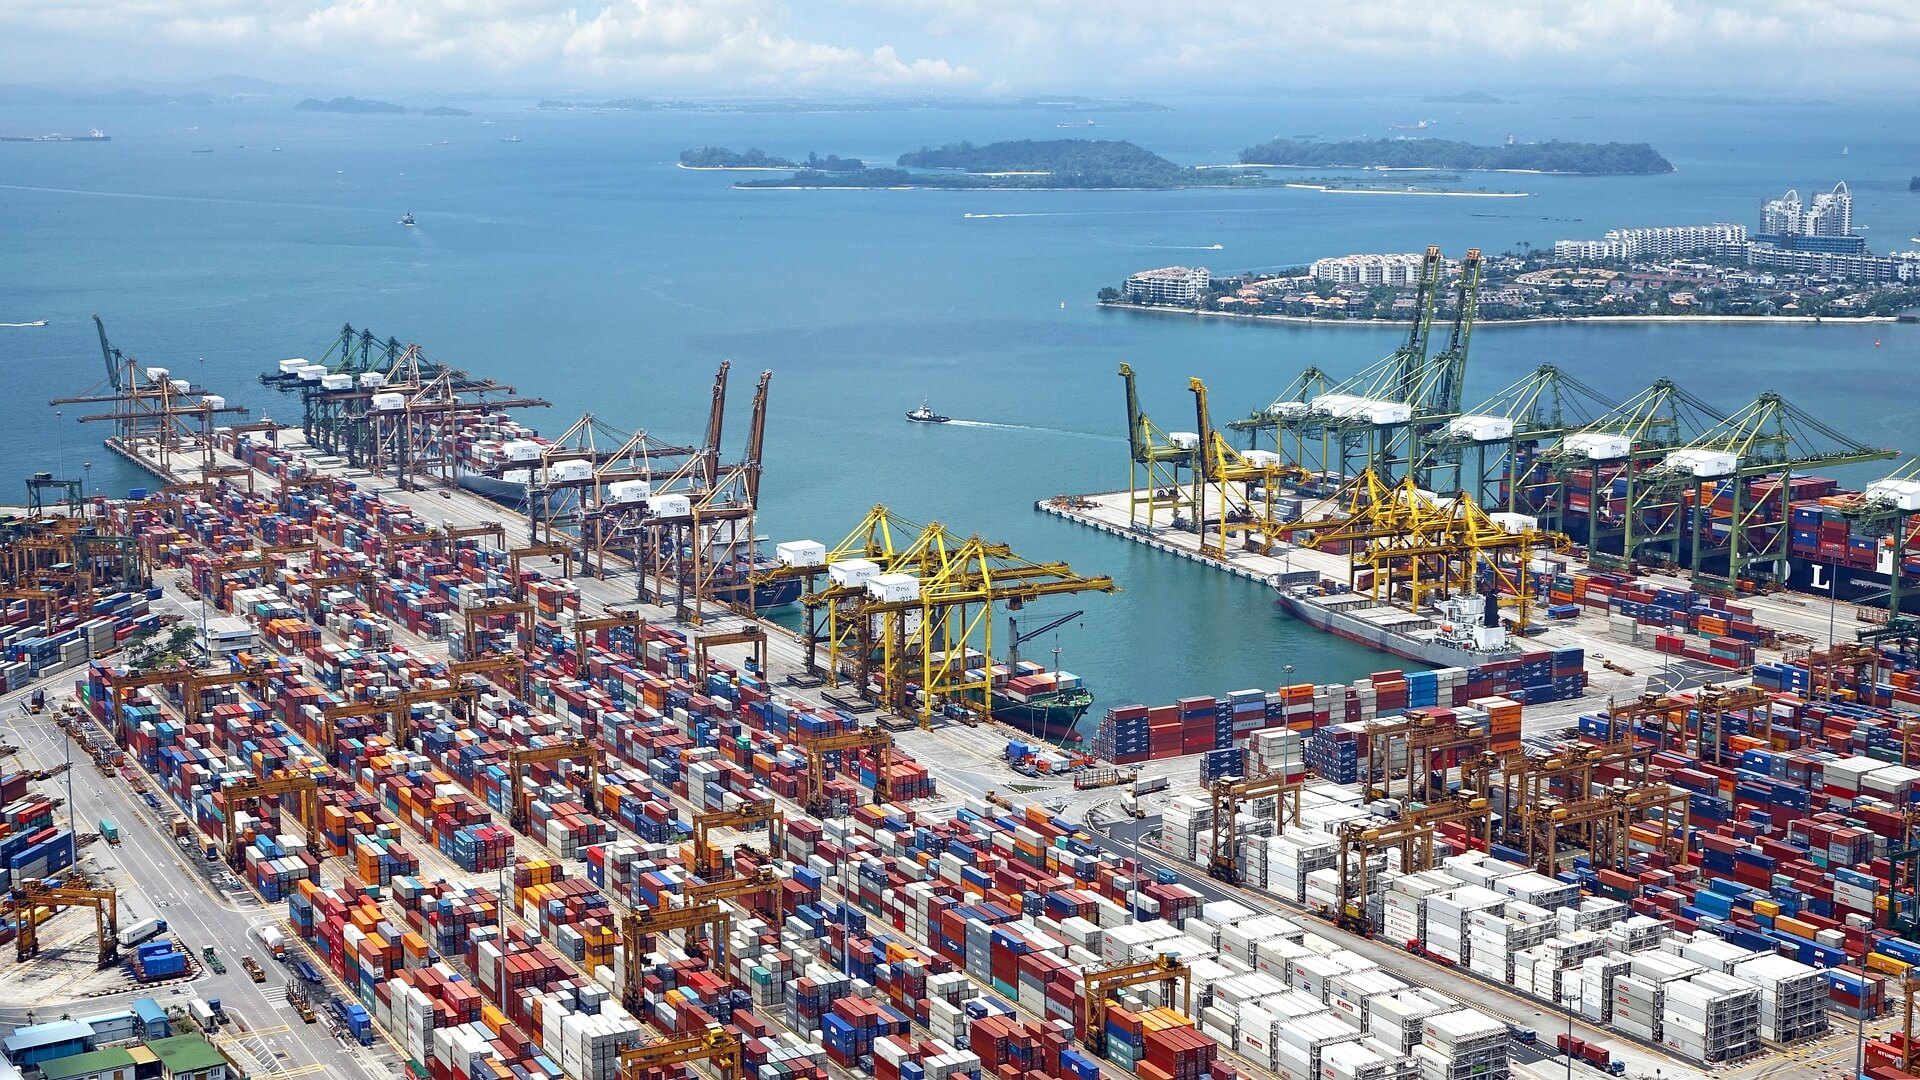 Exporting: What Do You Know and Who Should You Trust?